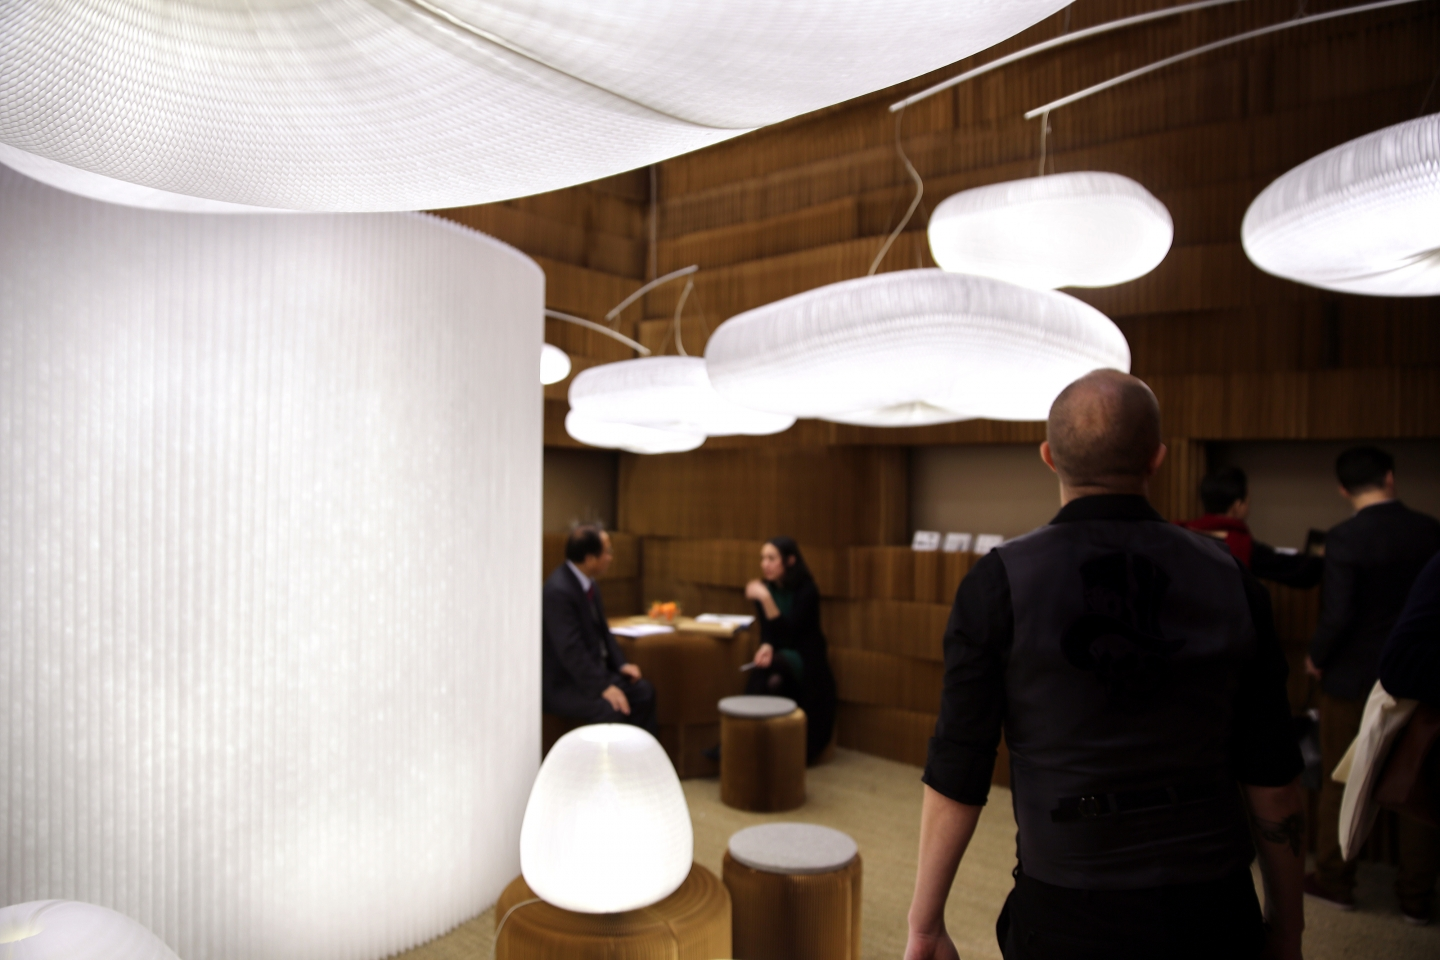 molo's booth at Maison & Objet featured textile softwall with integrated LED, as well as the visually cohesive softlight line. paper lighting at it's best